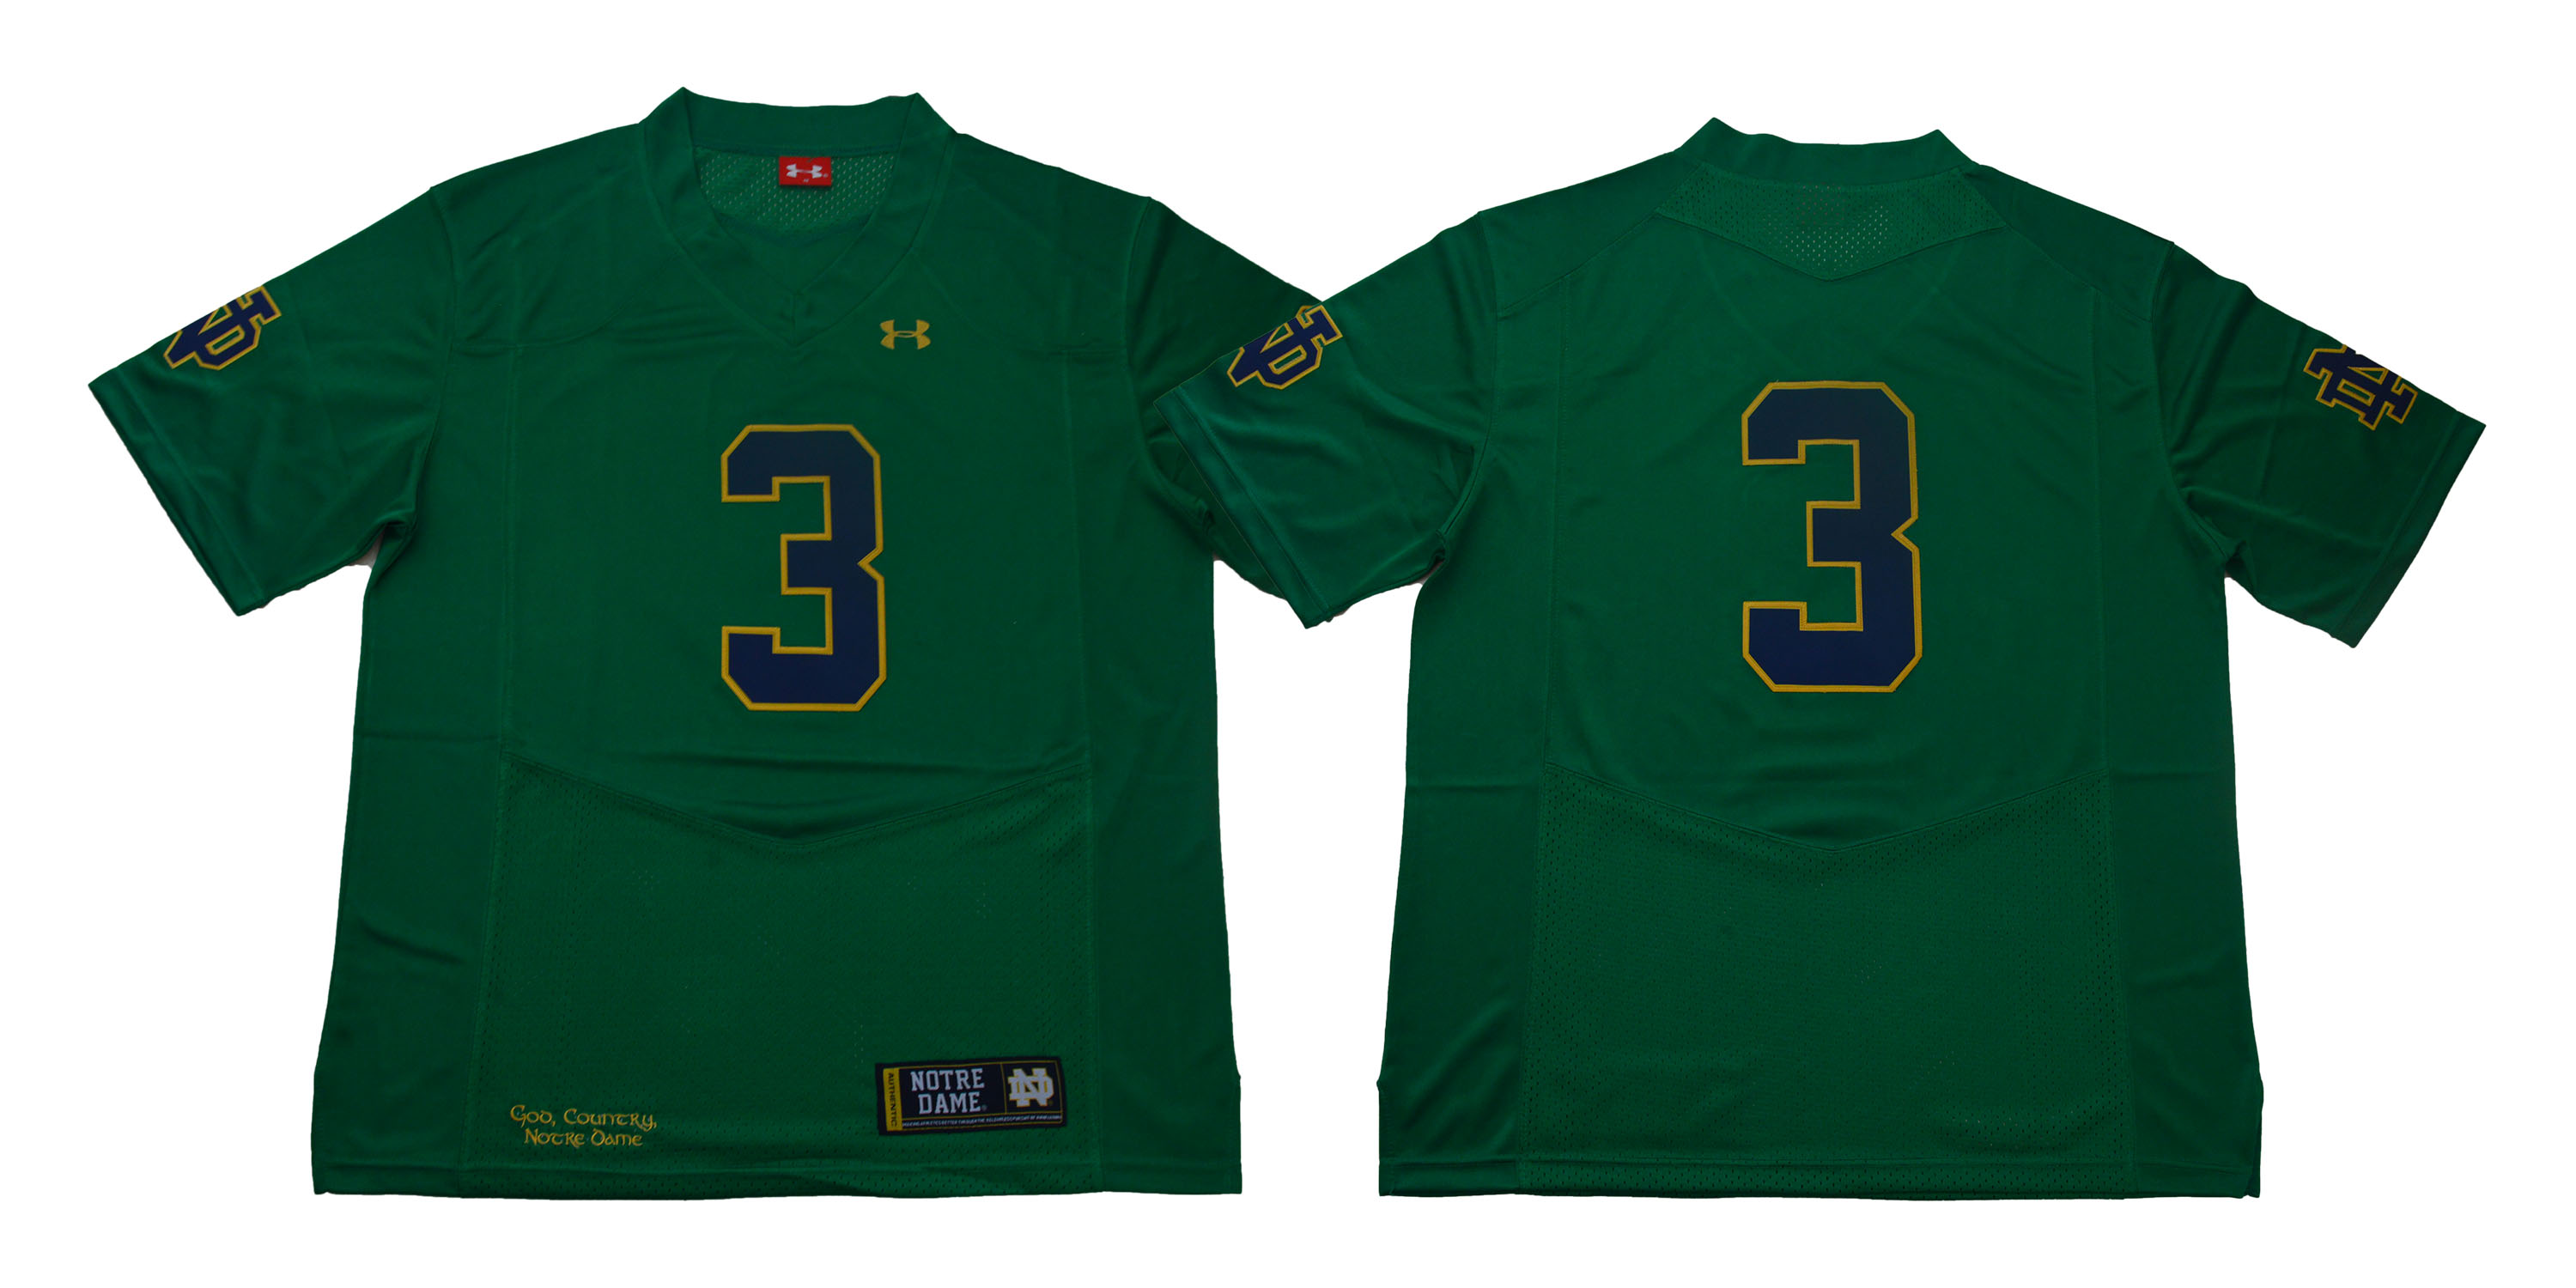 Notre Dame Fighting Irish #3 Green Under Armour College Football Jersey